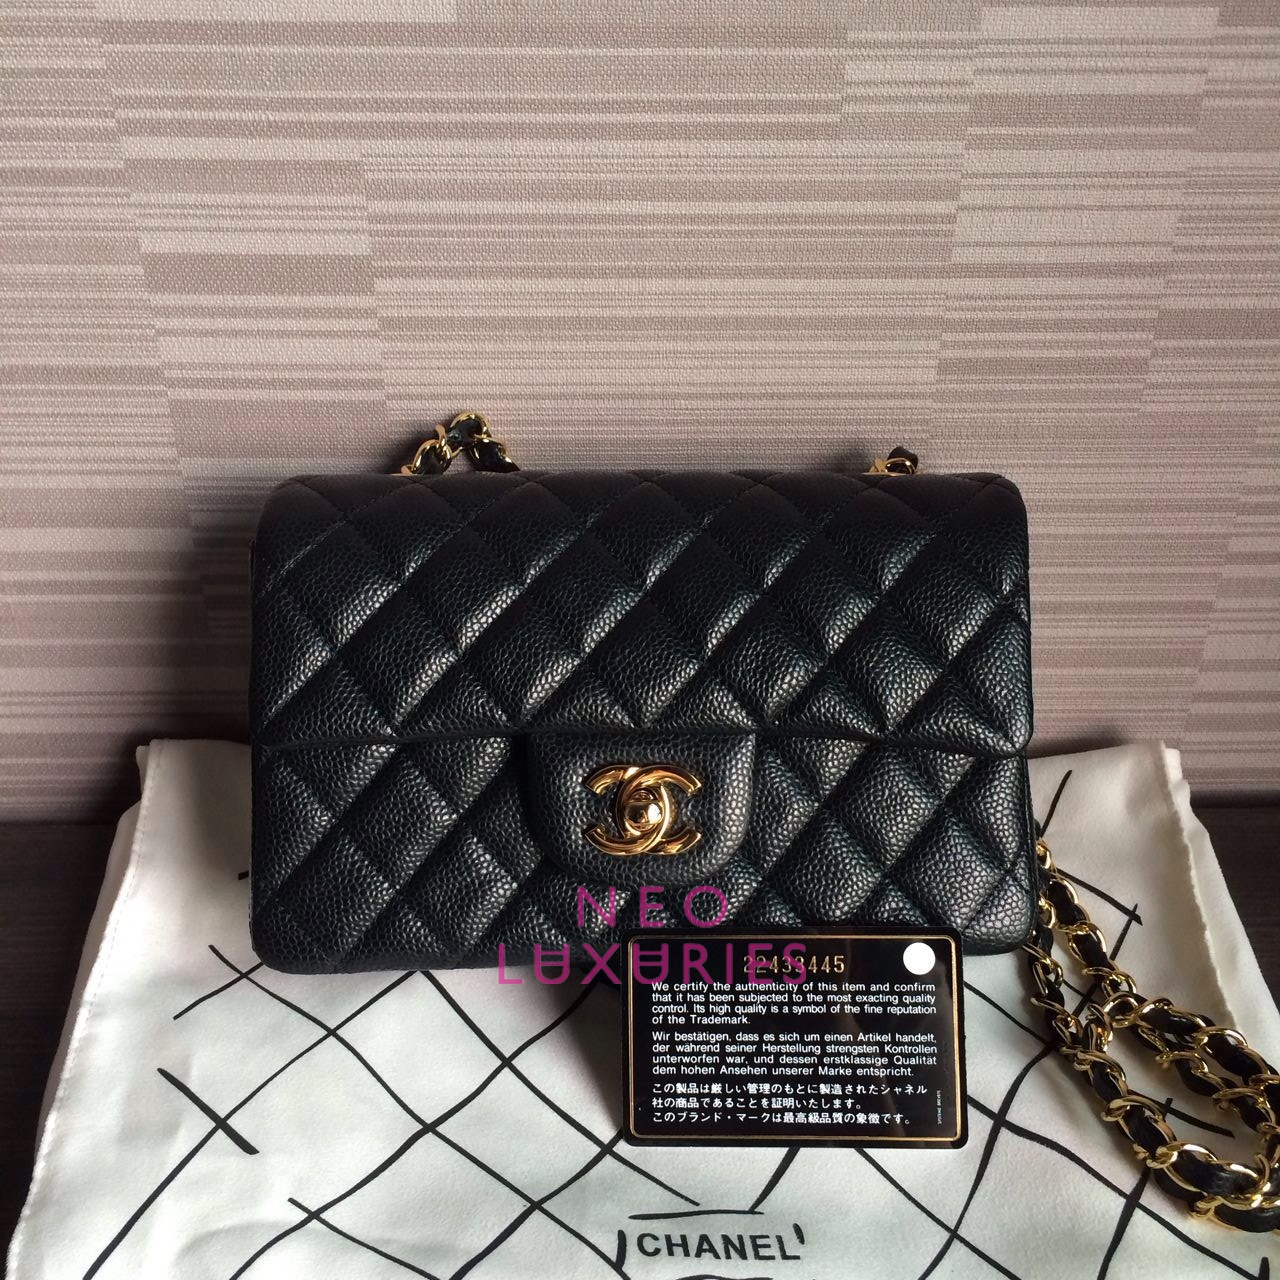 582b0edb1cd0 Neo LUXuries: SOLD: CHANEL Classic Flap New Mini Bag (20cm) - Black ...